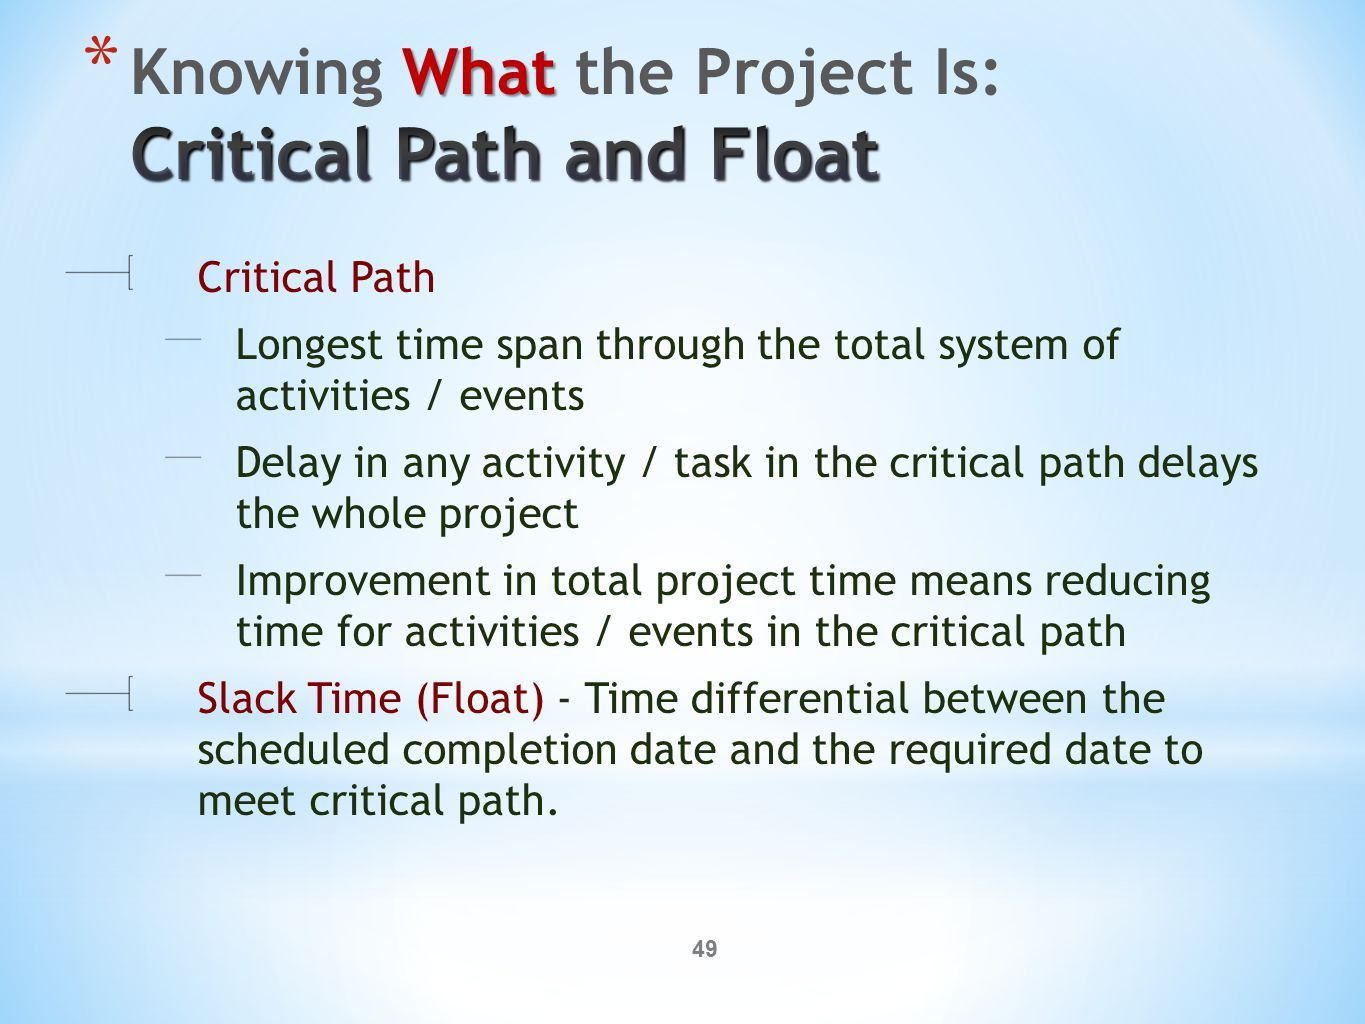 49 Critical Path Longest time span through the total system of activities / events Delay in any activity / task in the critical path delays the whole project Improvement in total project time means reducing time for activities / events in the critical path Slack Time (Float) - Time differential between the scheduled completion date and the required date to meet critical path.